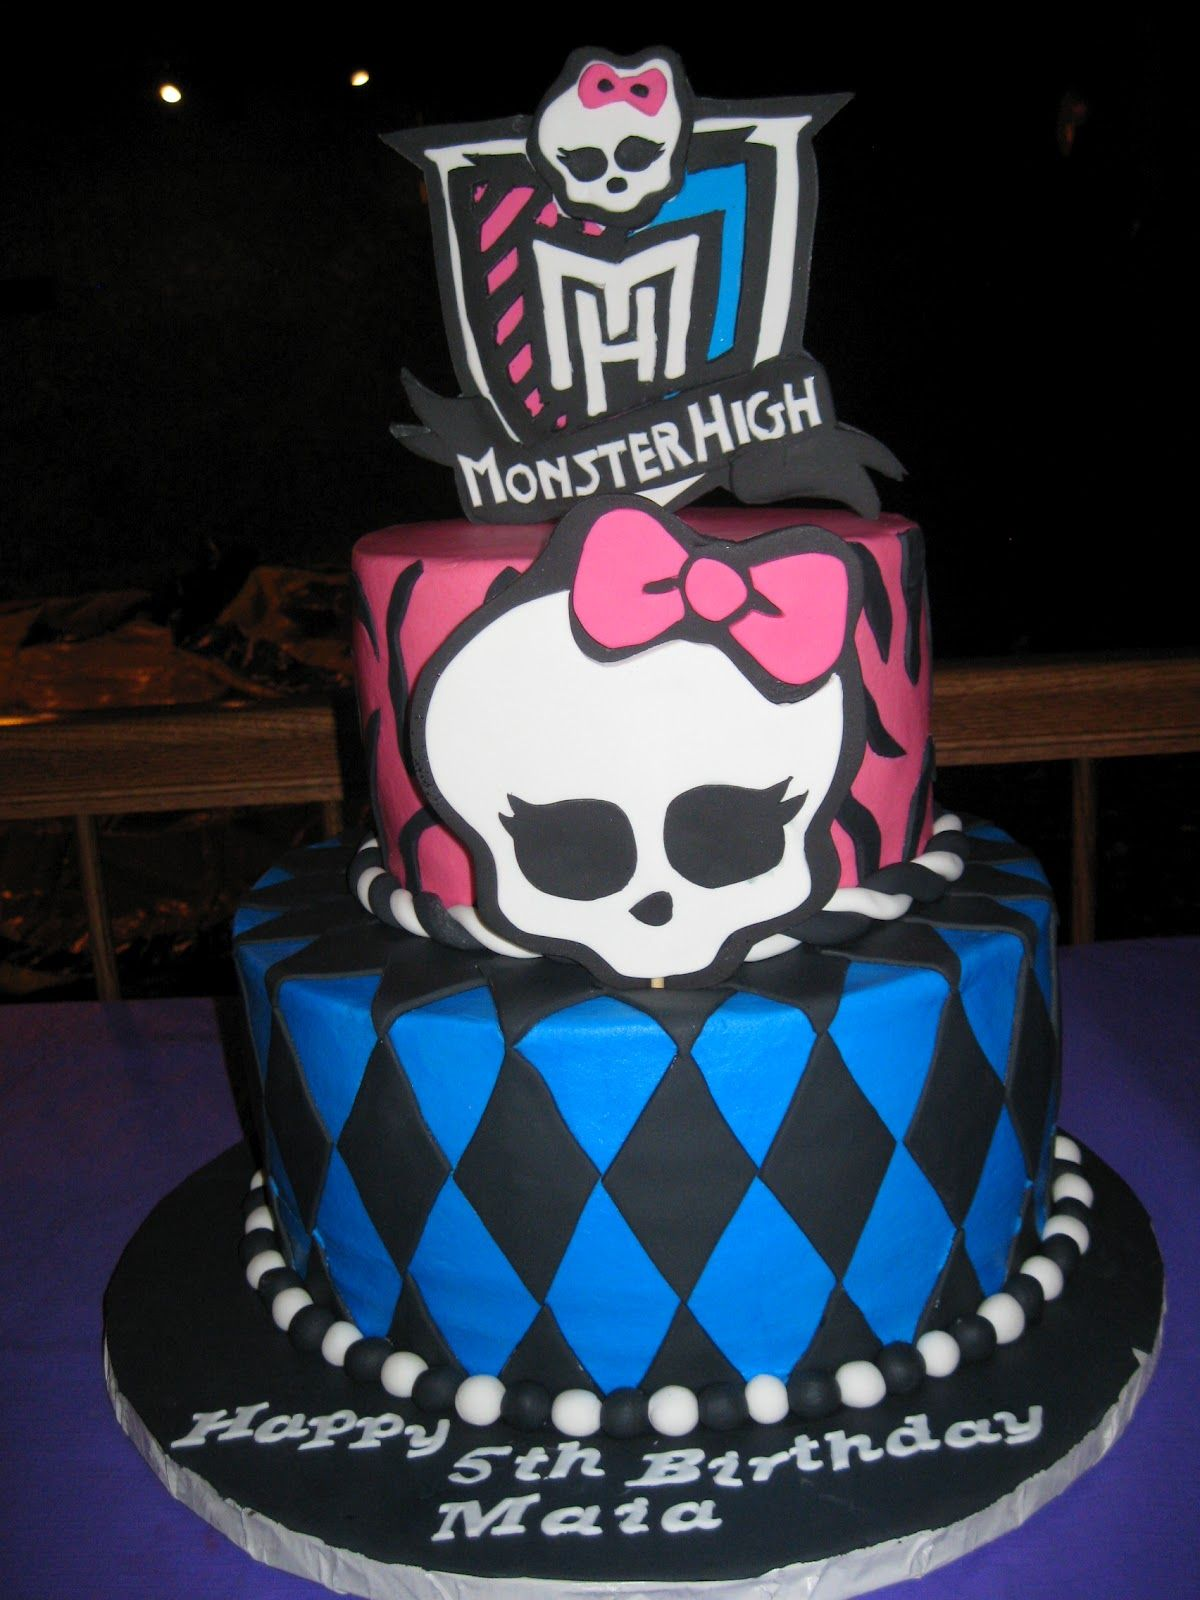 cakes pictures Cookie Jar More Monster High Cake cakes